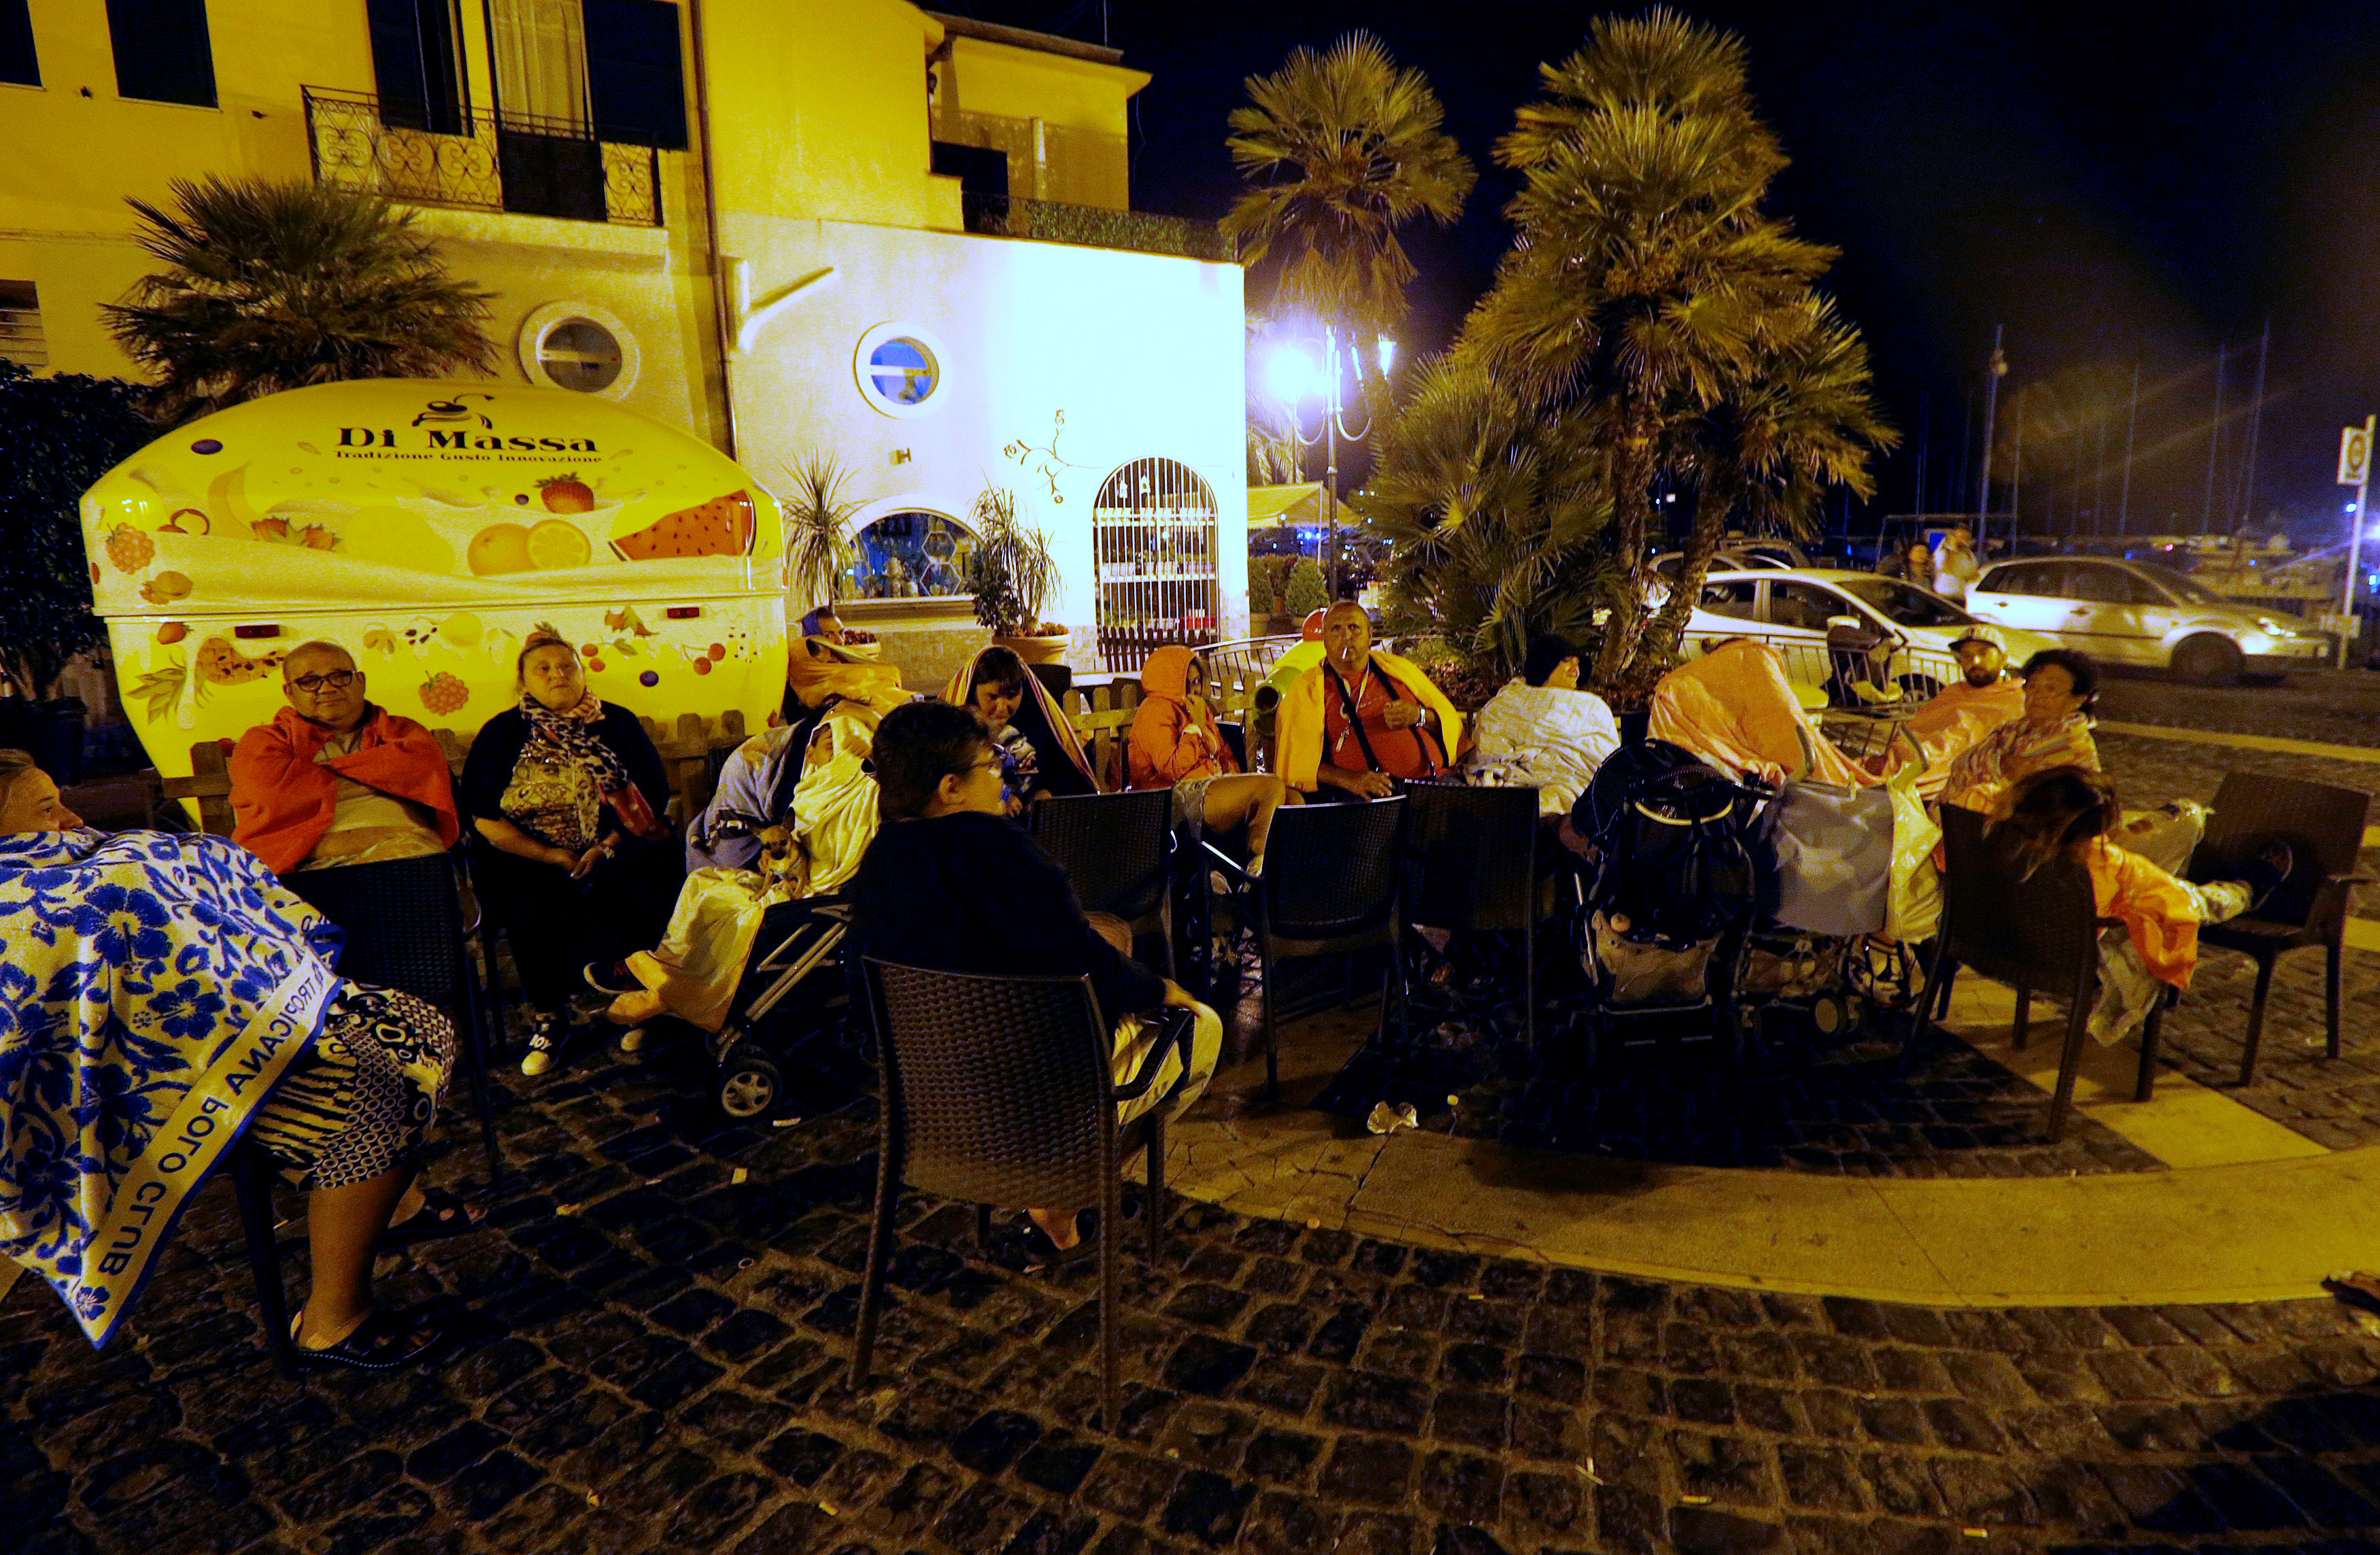 People sit in the street on early morning after an earthquake hit the island of Ischia, off the coast of Naples, Italy on August 22, 2017. (REUTERS/Ciro De Luca)